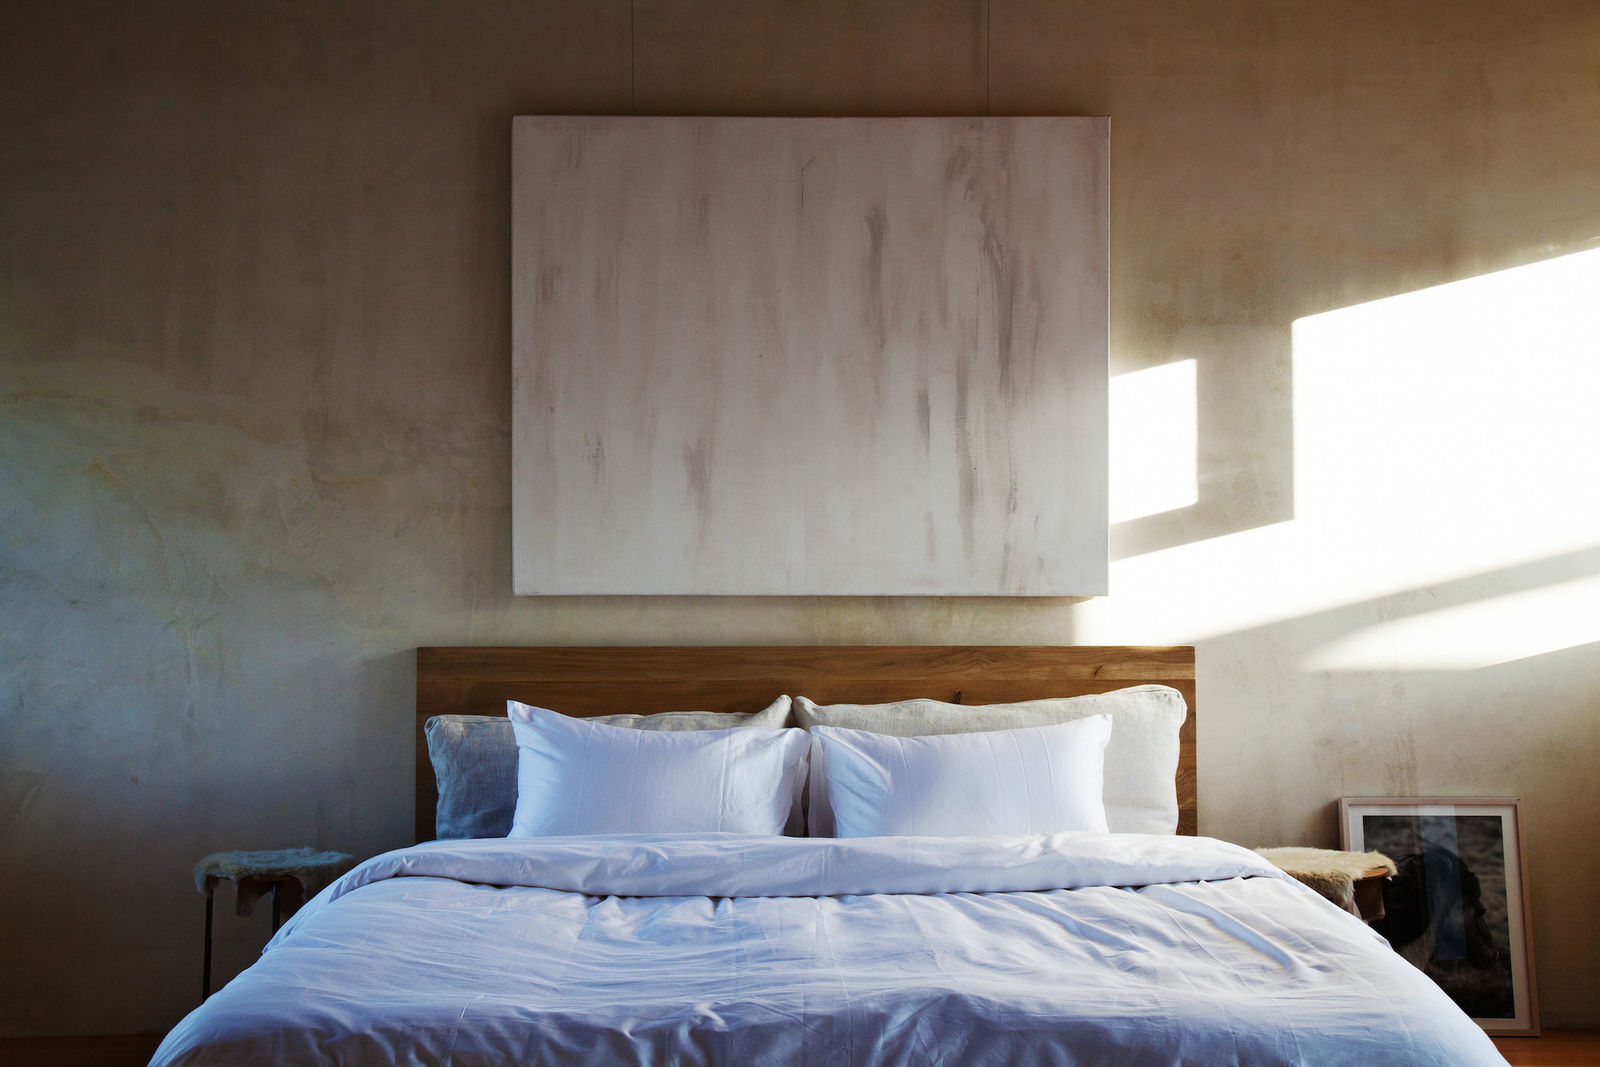 Minimal rustic chic bedroom designed by Leanne Ford with white linens, abstract painting, and tone on tone. #leanneford #bedroom #minimal #toneontone #modern